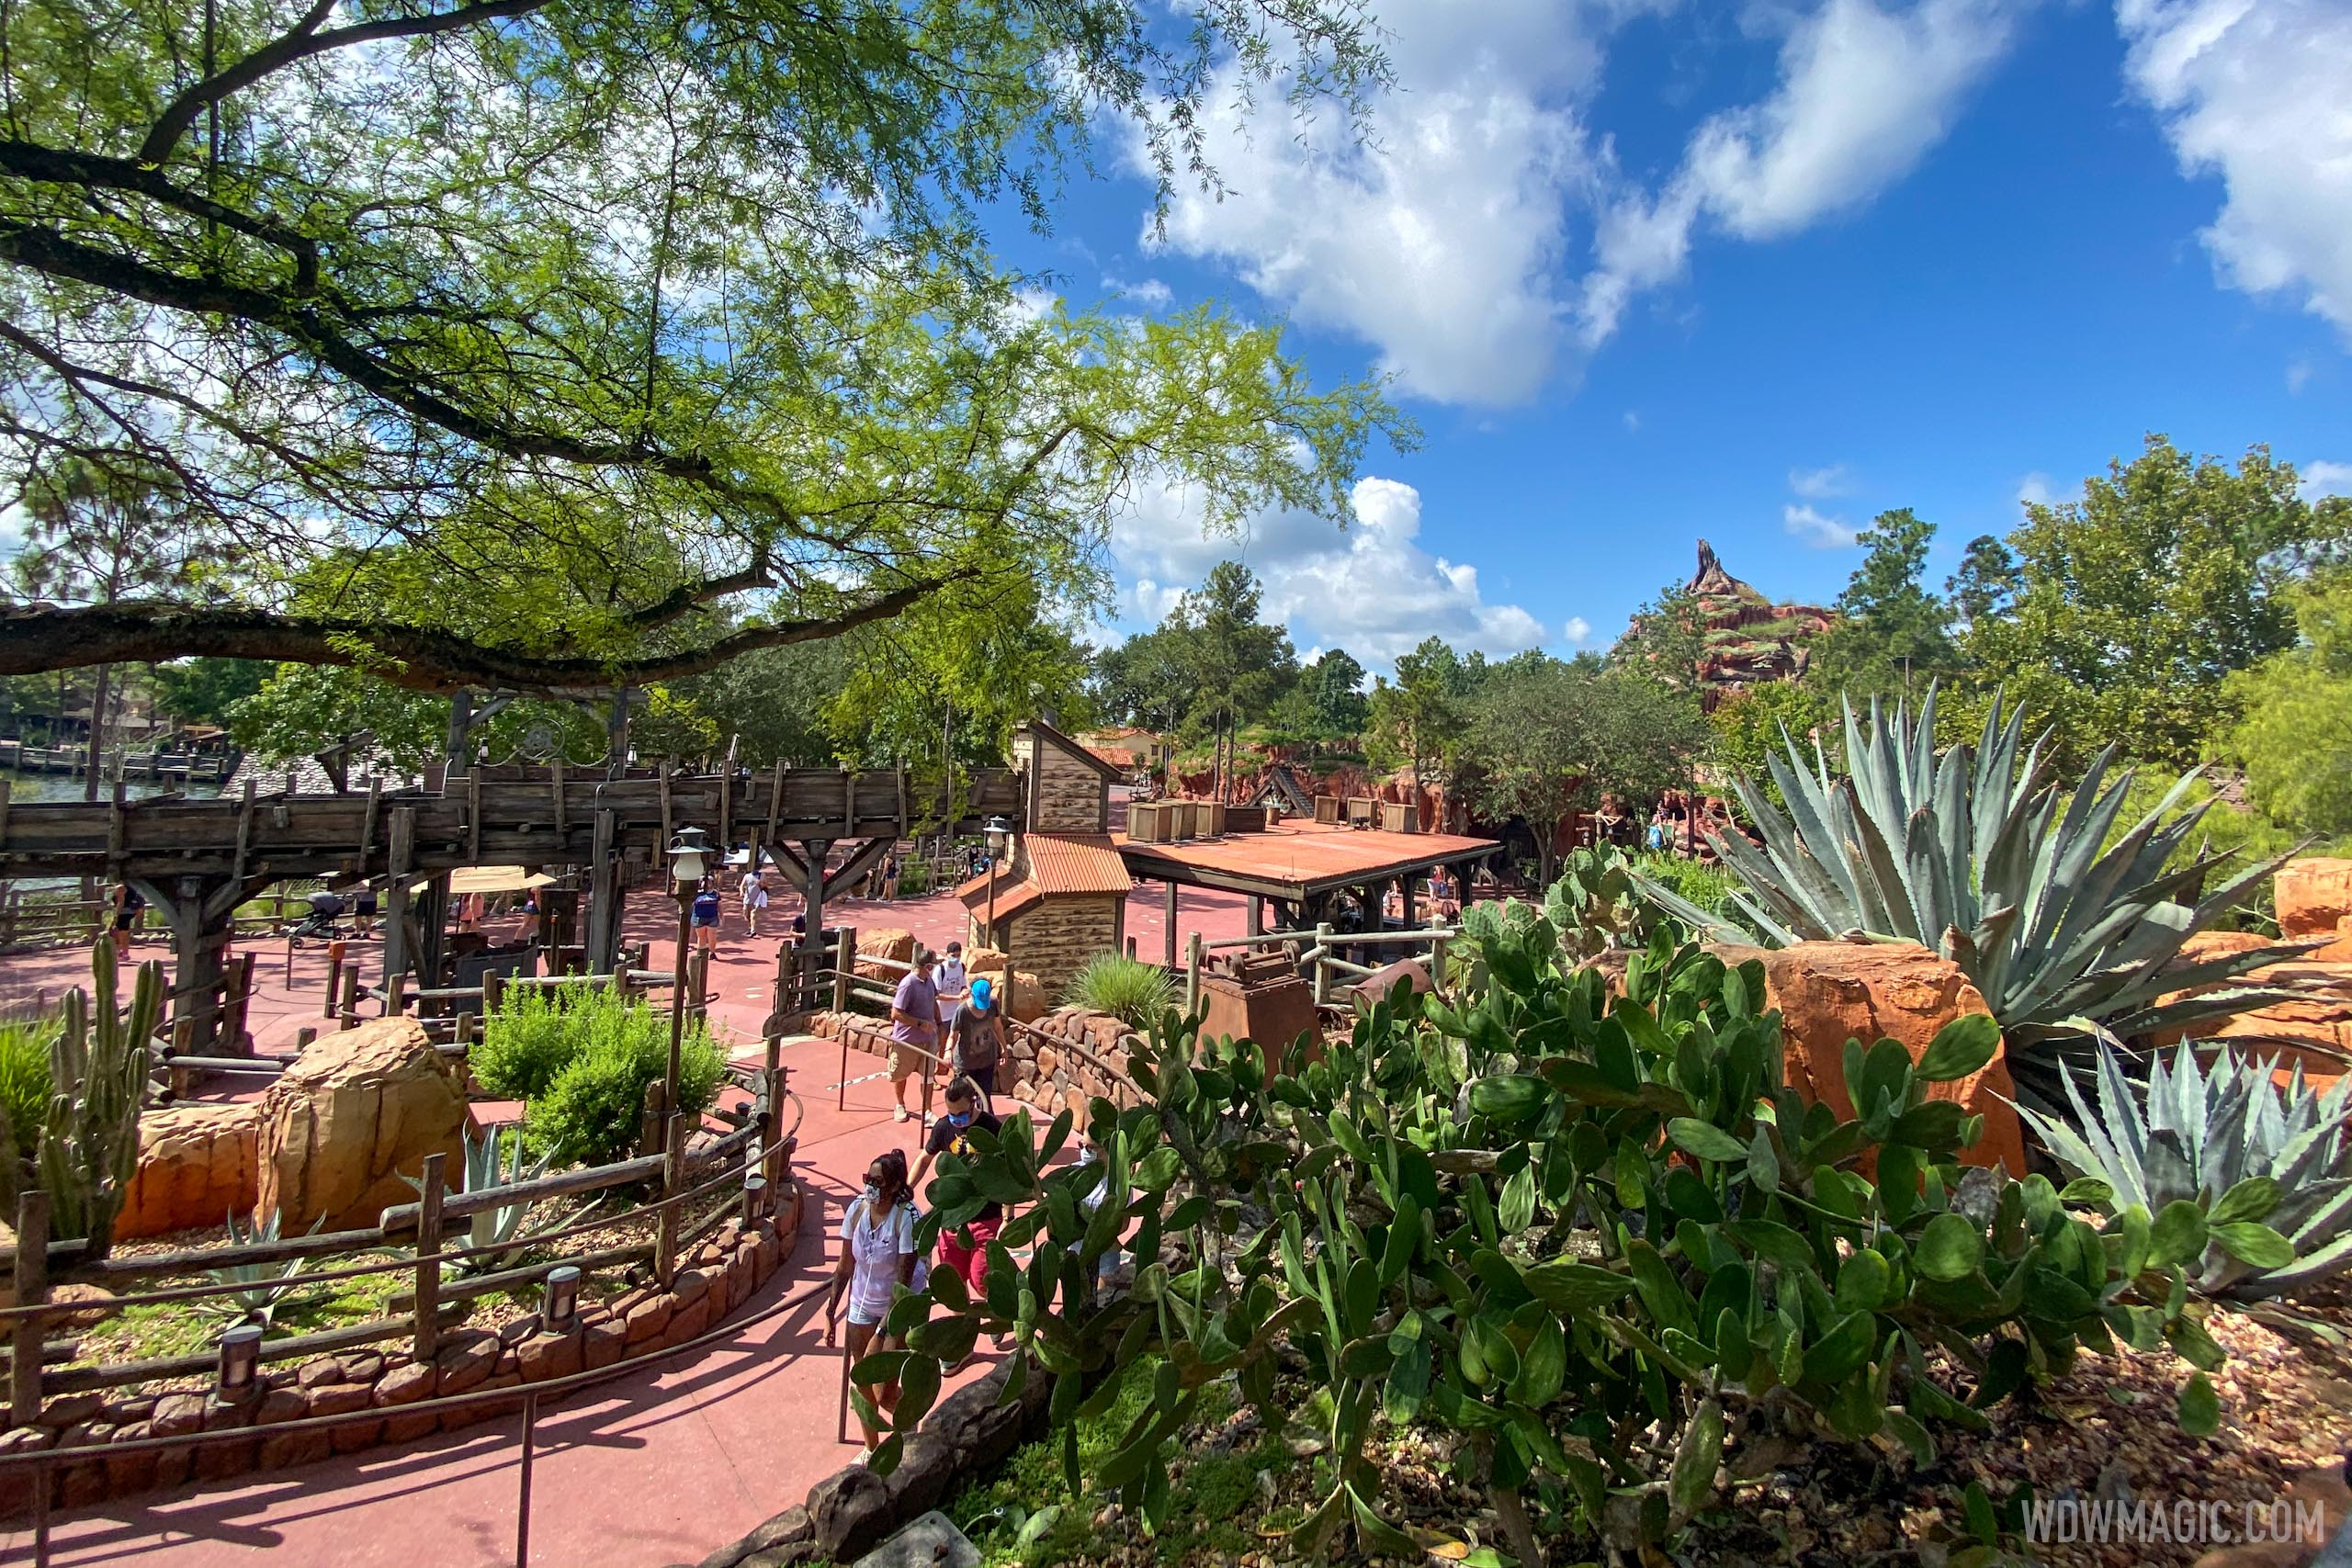 Frontierland viewed from Big Thunder Mountain